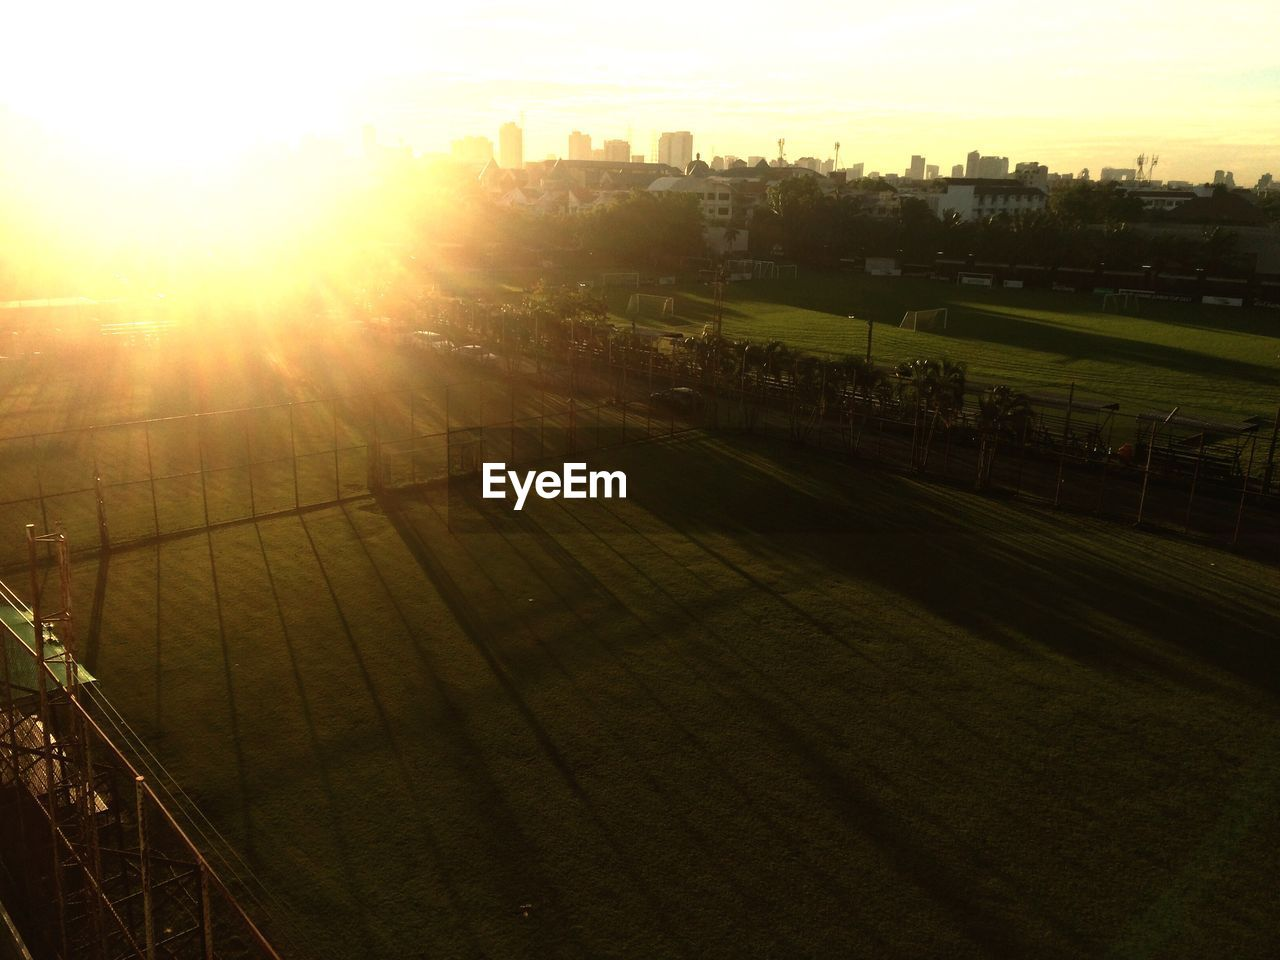 SCENIC VIEW OF FIELD AGAINST SUNSET SKY